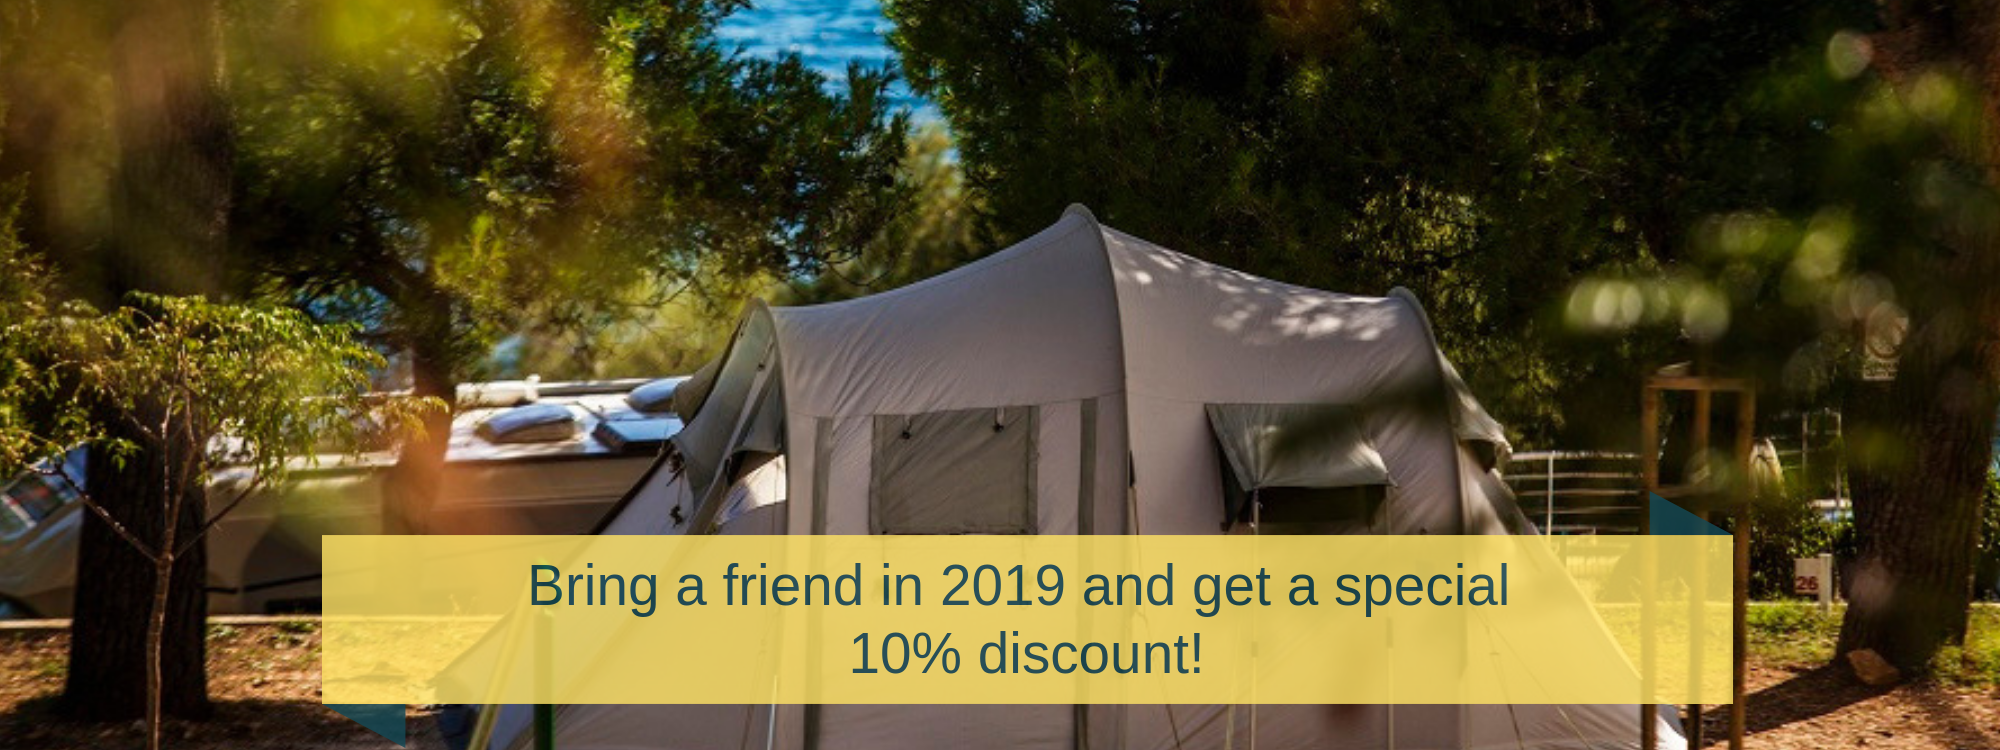 Bring-a-friend-in-2019-and-get-a-special-10-discount